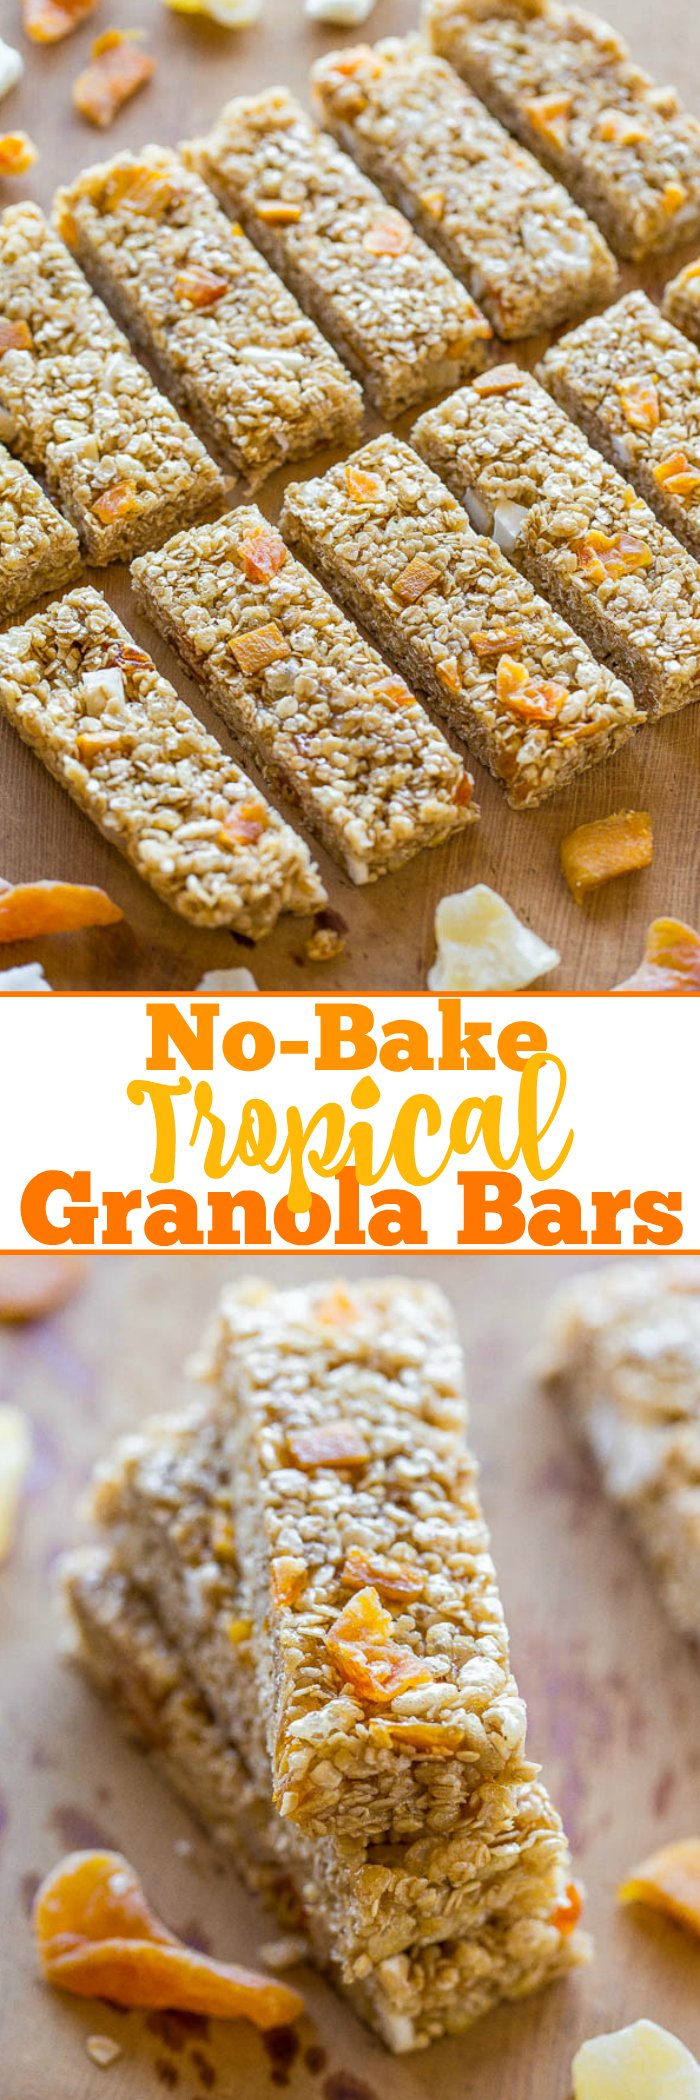 No-Bake Tropical Granola Bars - Soft, chewy, easy, and ready in minutes!! No baking or nut butter necessary! You won't miss storebought granola bars after tasting how AWESOME homemade bars are!!